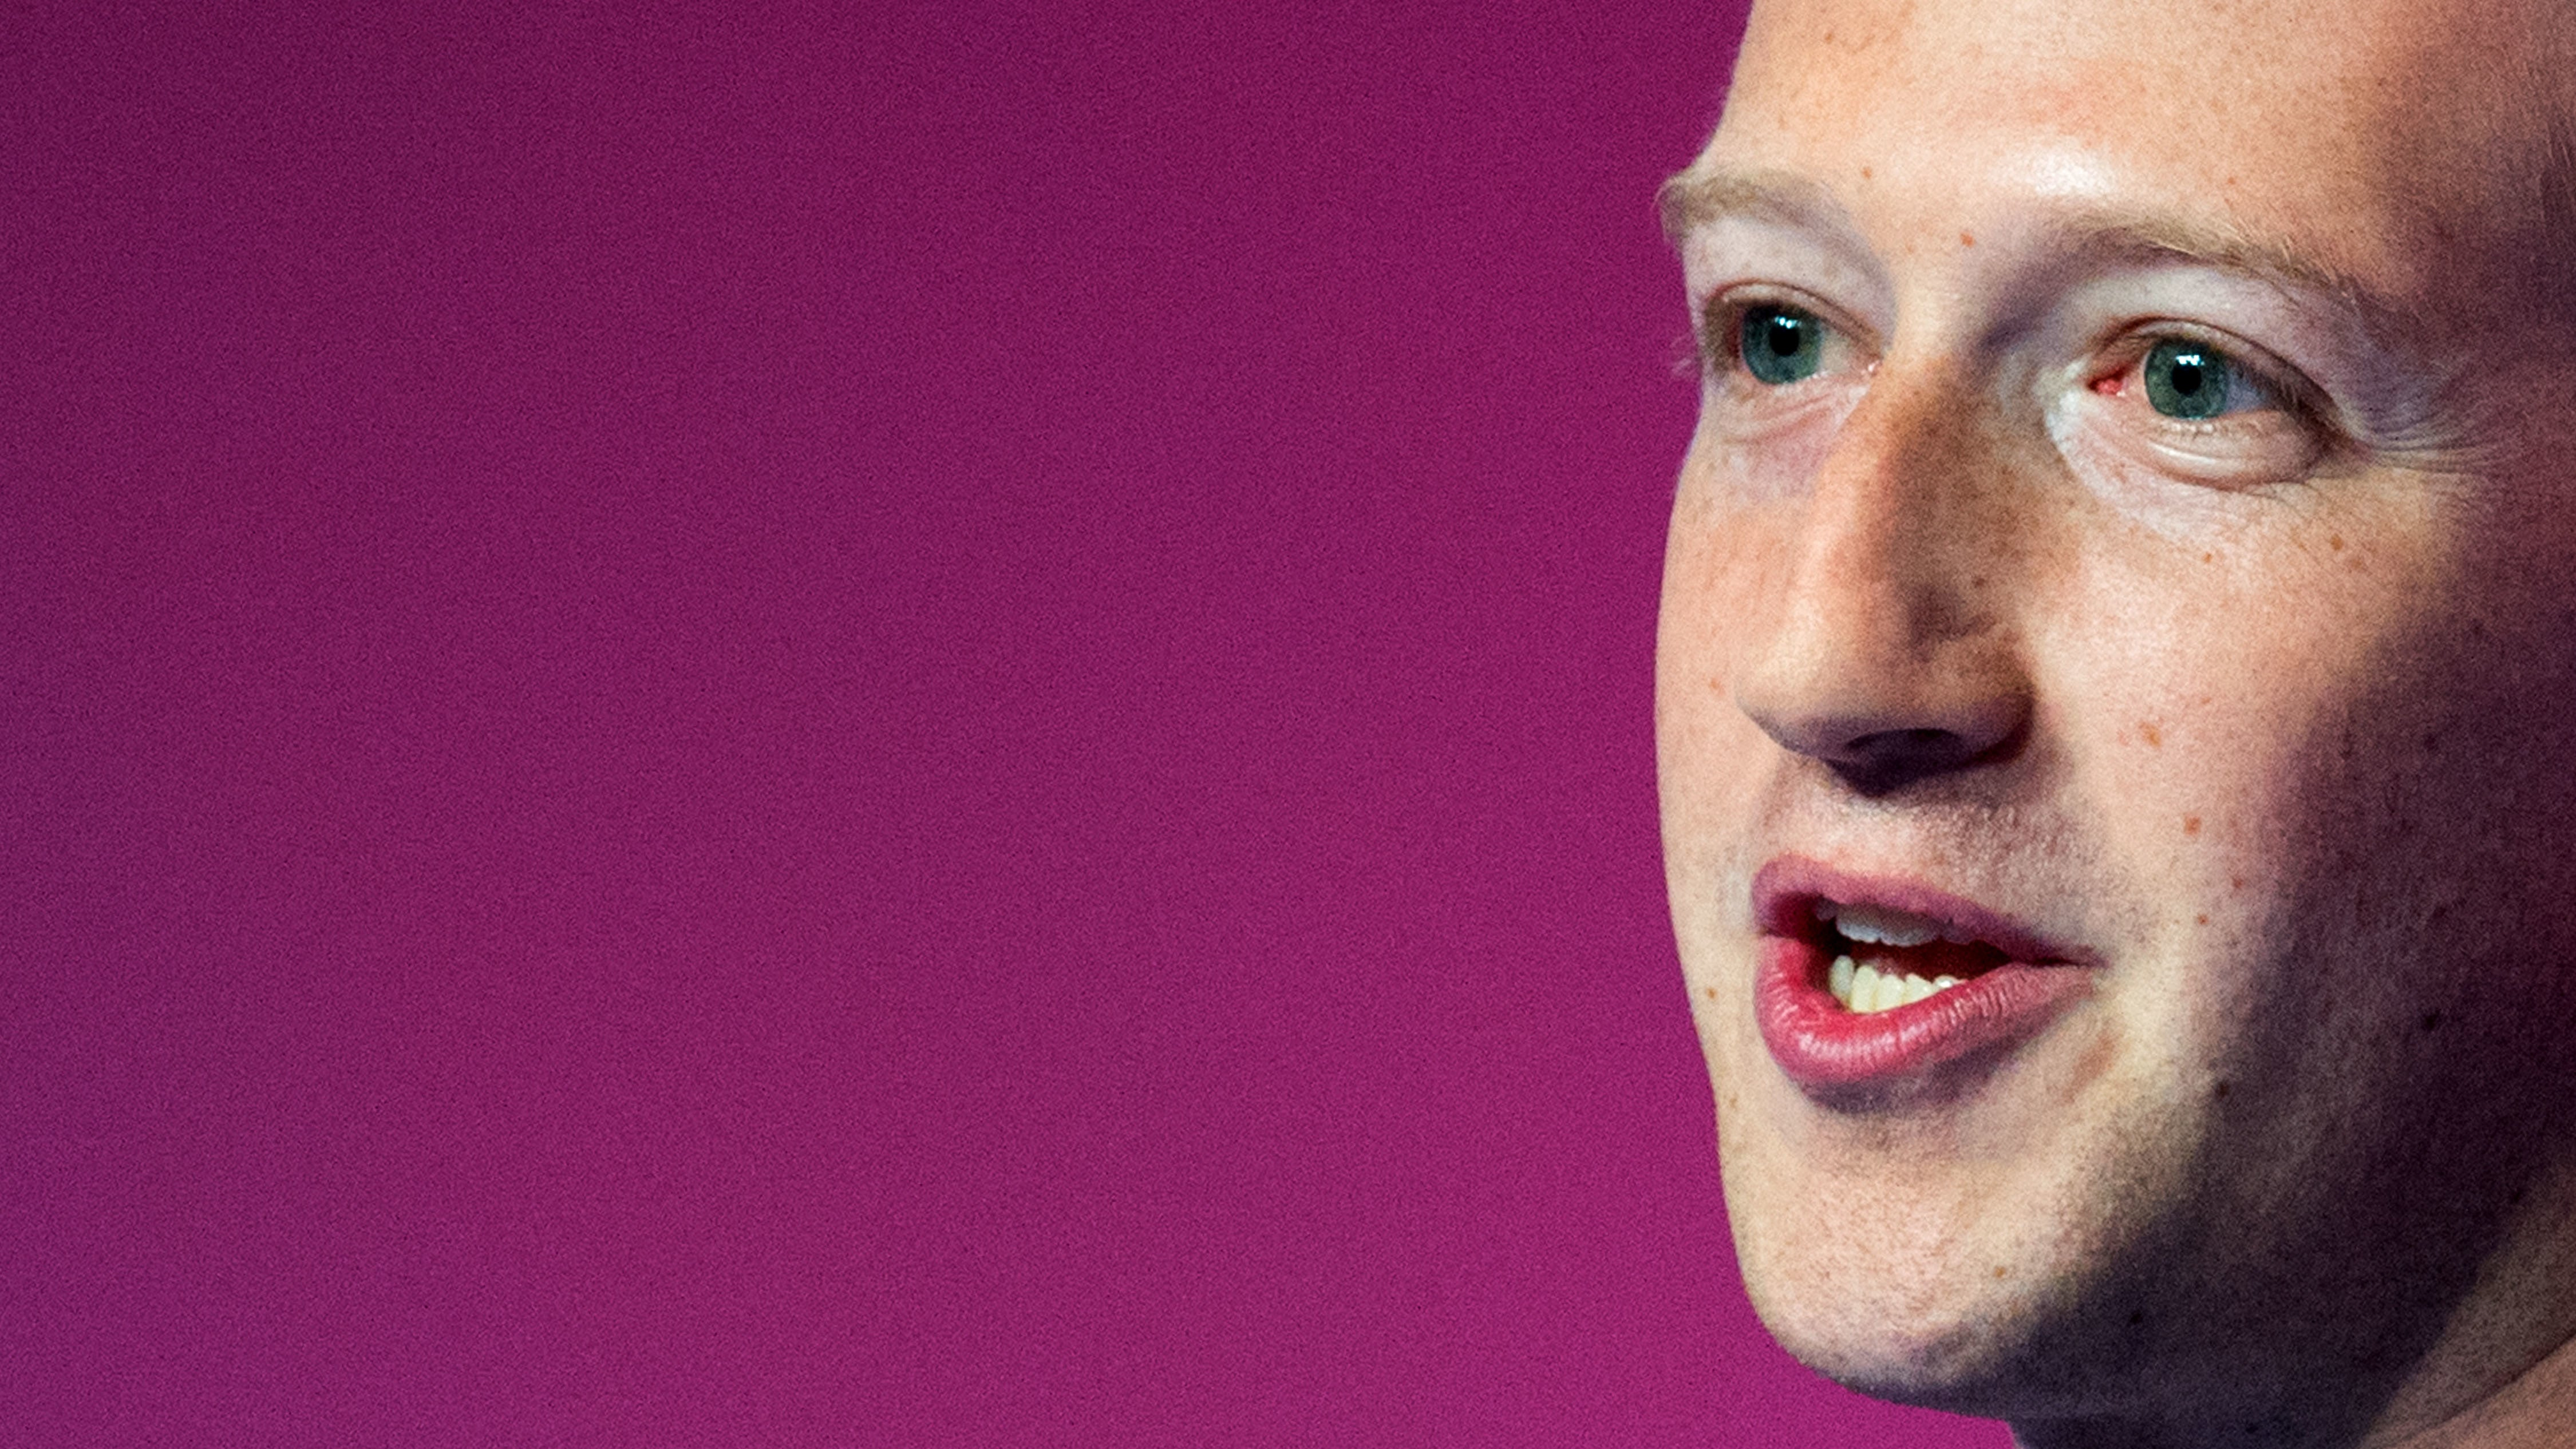 Facebook Reportedly Used Anti-Muslim Ad As Test Case In Video Formats